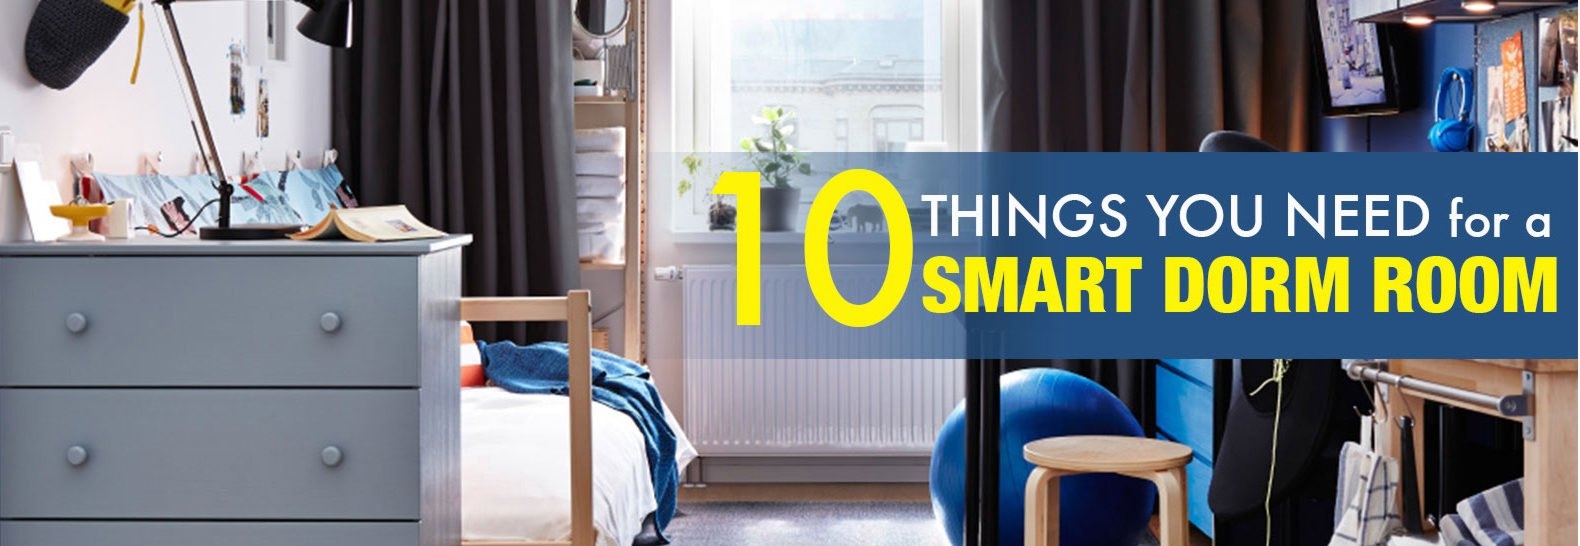 Prissy Cheap Things Every College Dorm Room Needs Cheap Things Every College Dorm Room Needs Inhabitat College Dorm Furniture Hacks College Dorm Furniture Ideas bedroom College Dorm Seating